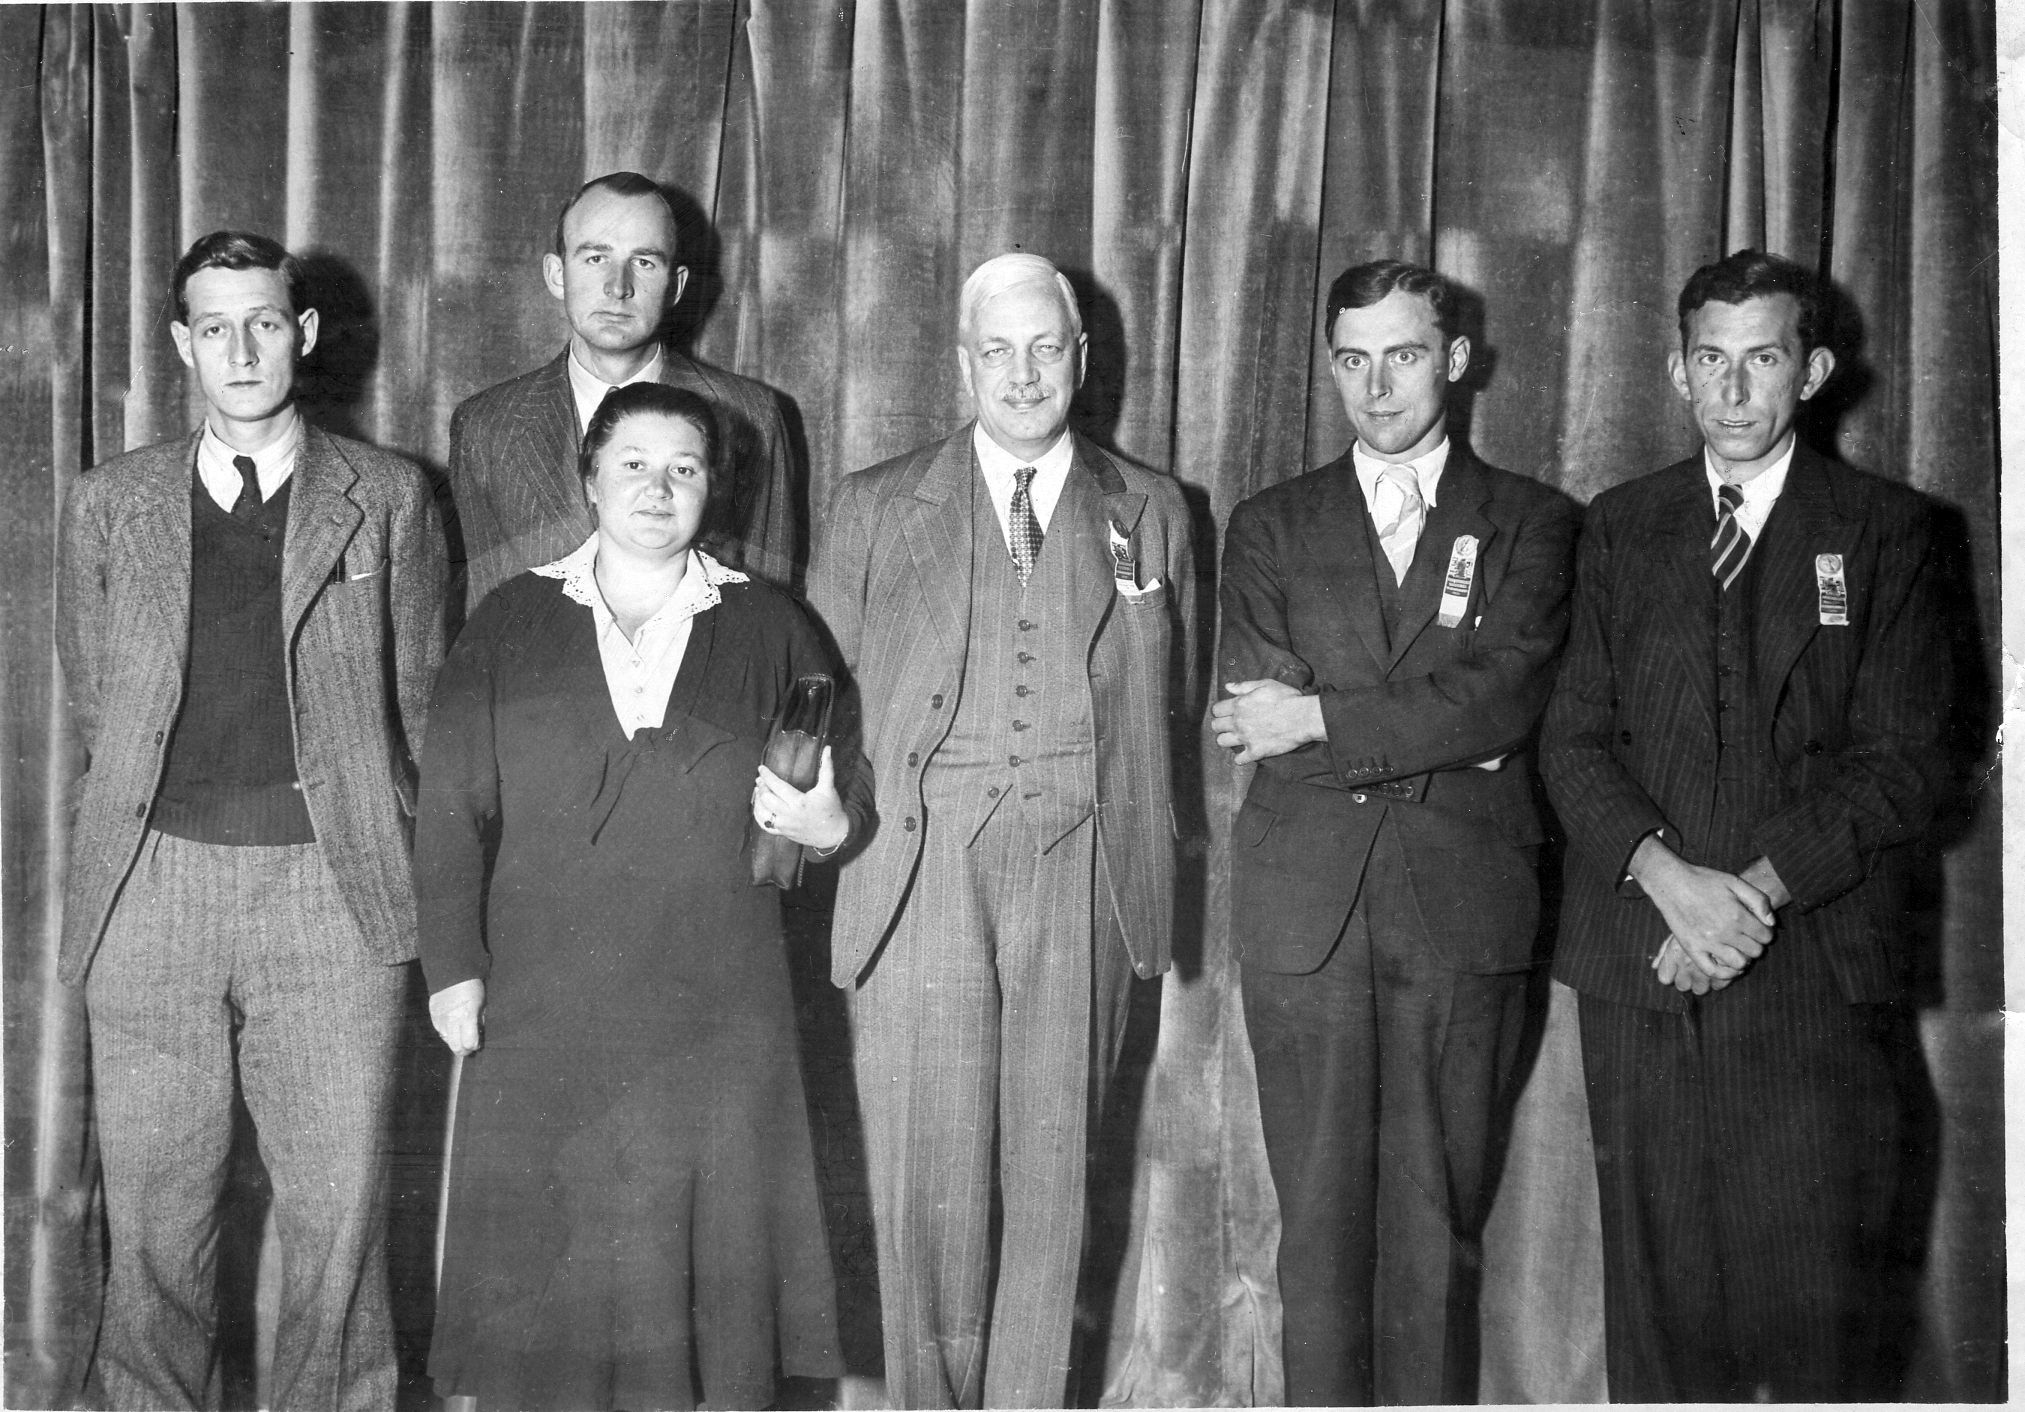 Left to right Baruch H Wood, Stuart Milner-Barry, Vera Menchik (playing in the women's world championship (held concurrently with the 1939 Buenos Aires Olympiad) which she won with 17 wins and 2 draws), Sir George Thomas, Conel Hugh O'Donel Alexander and Harry Golombek. England withdrew after their preliminary group due to the outbreak of war despite qualifying for the top final. Thanks to Leonard Barden